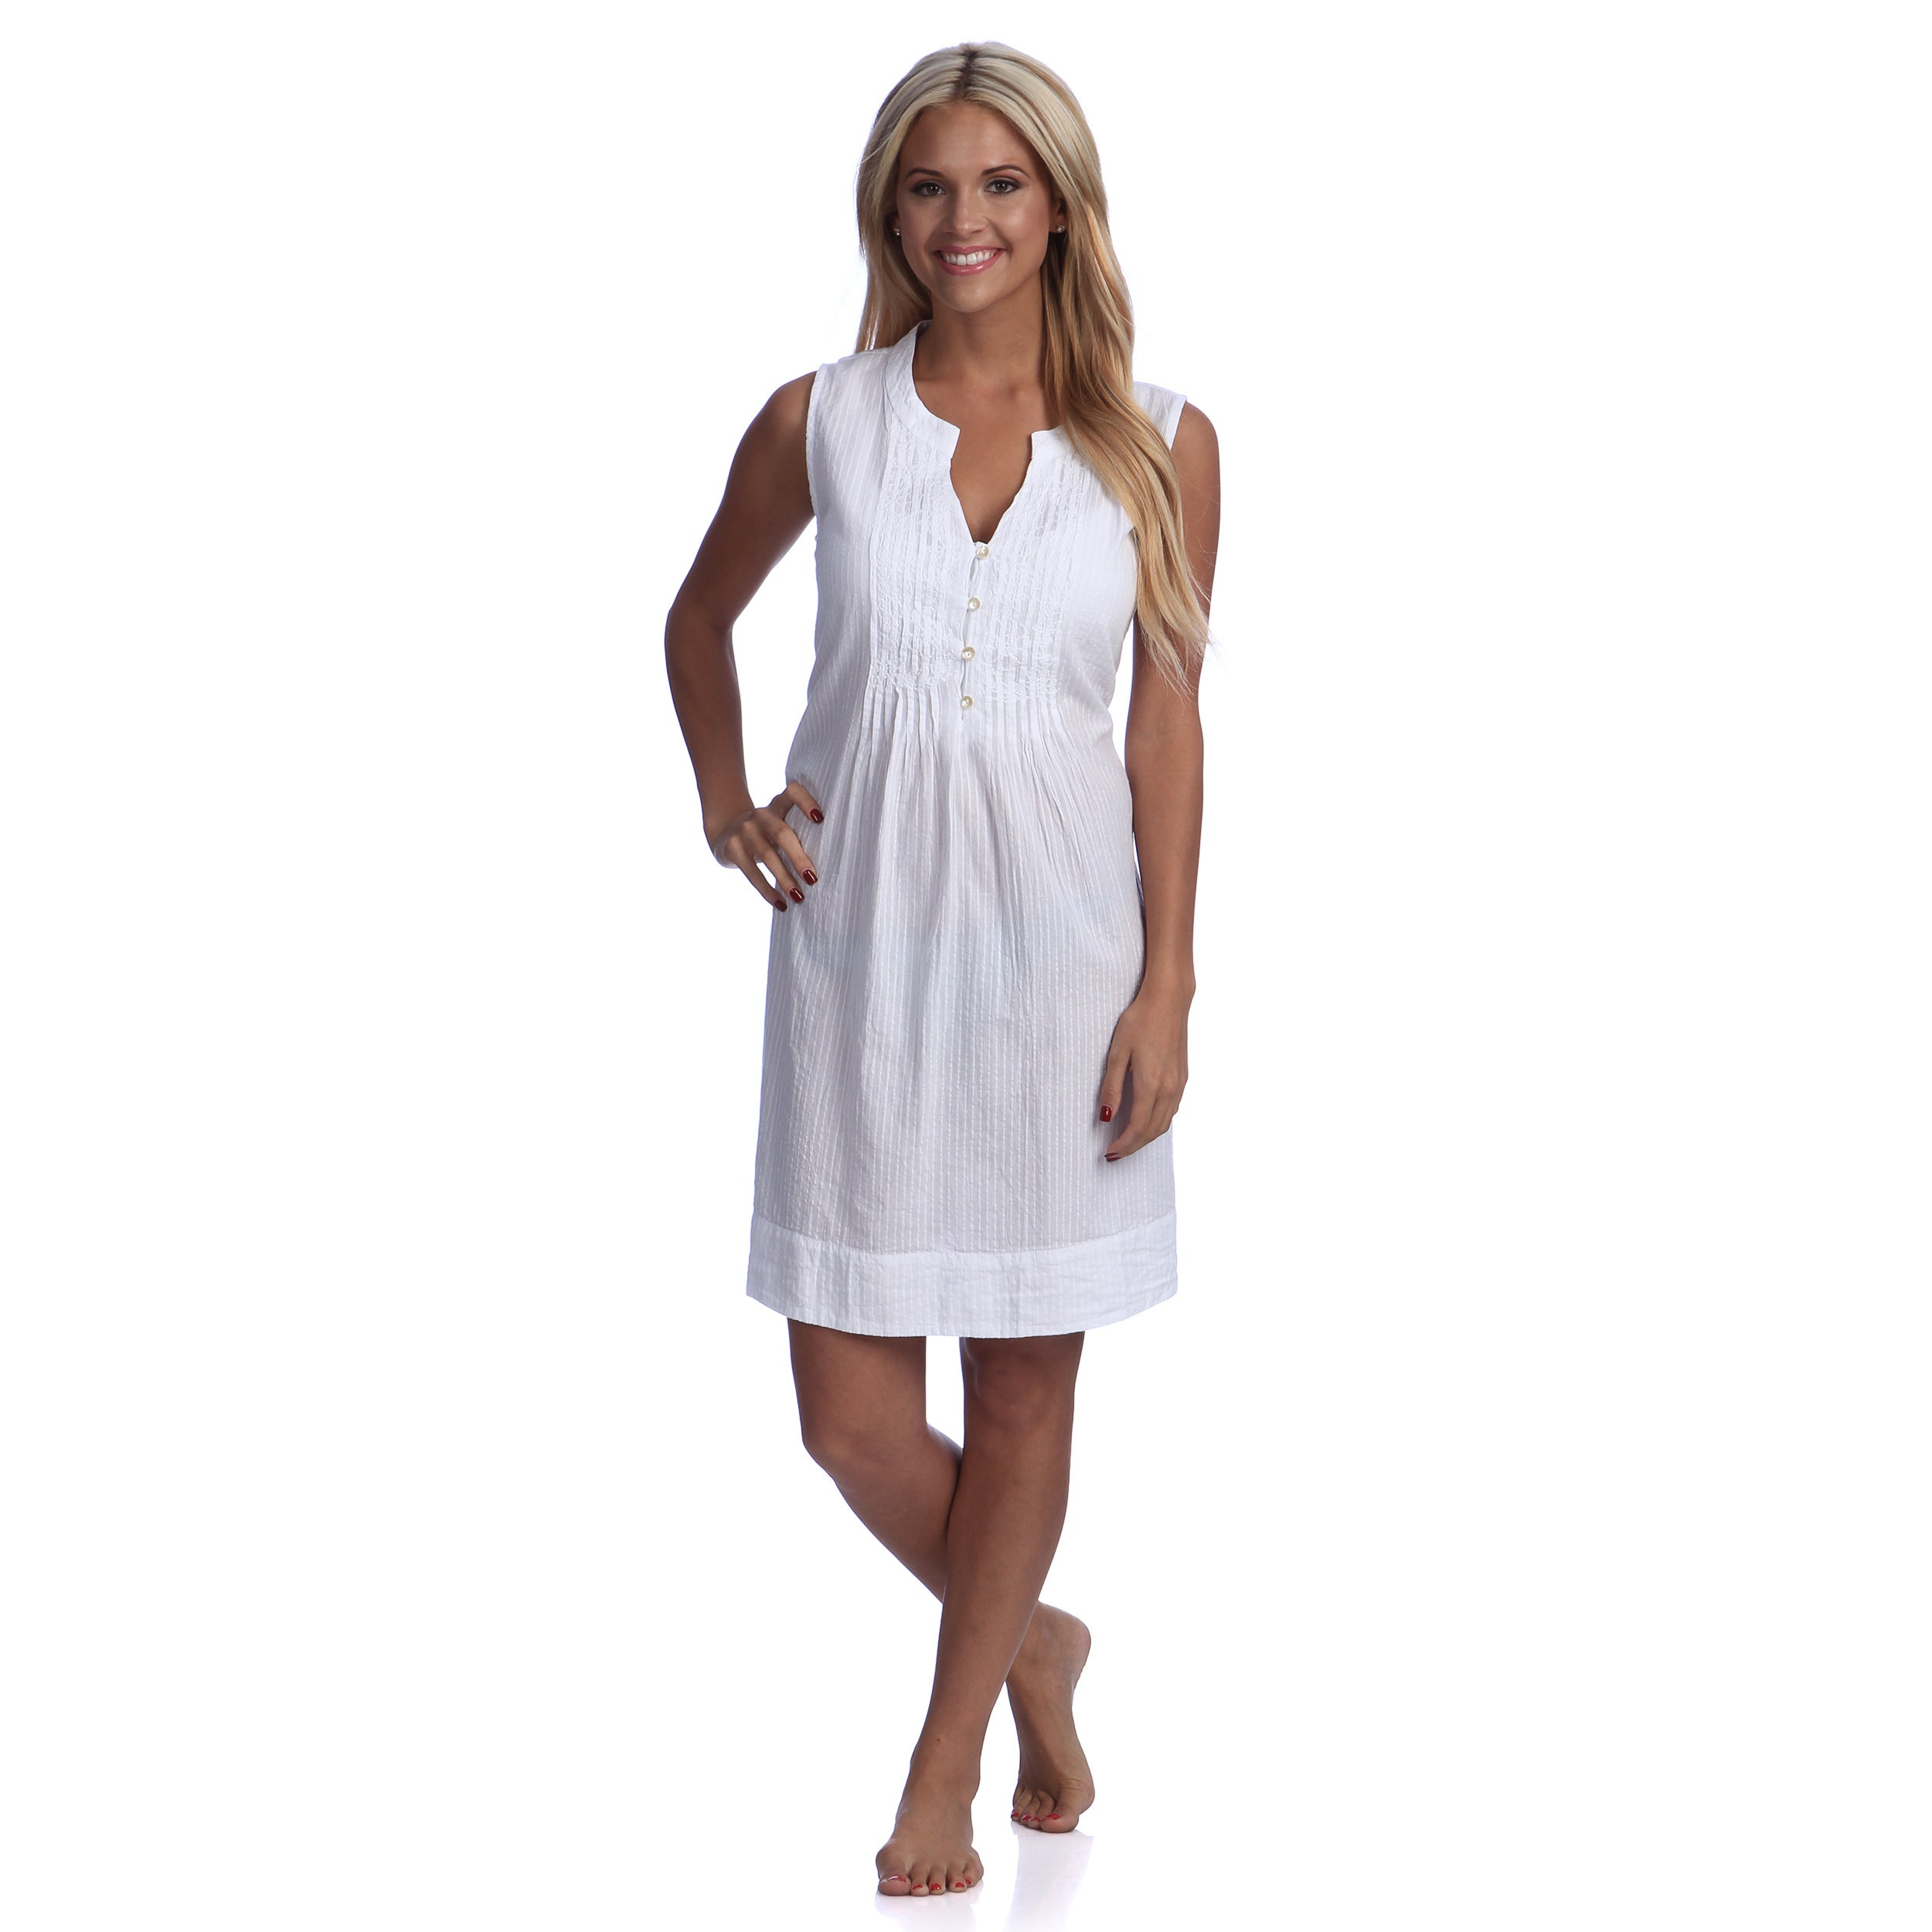 Buy Cotton, Nightgowns Pajamas & Robes Online at Overstock.com | Our ...